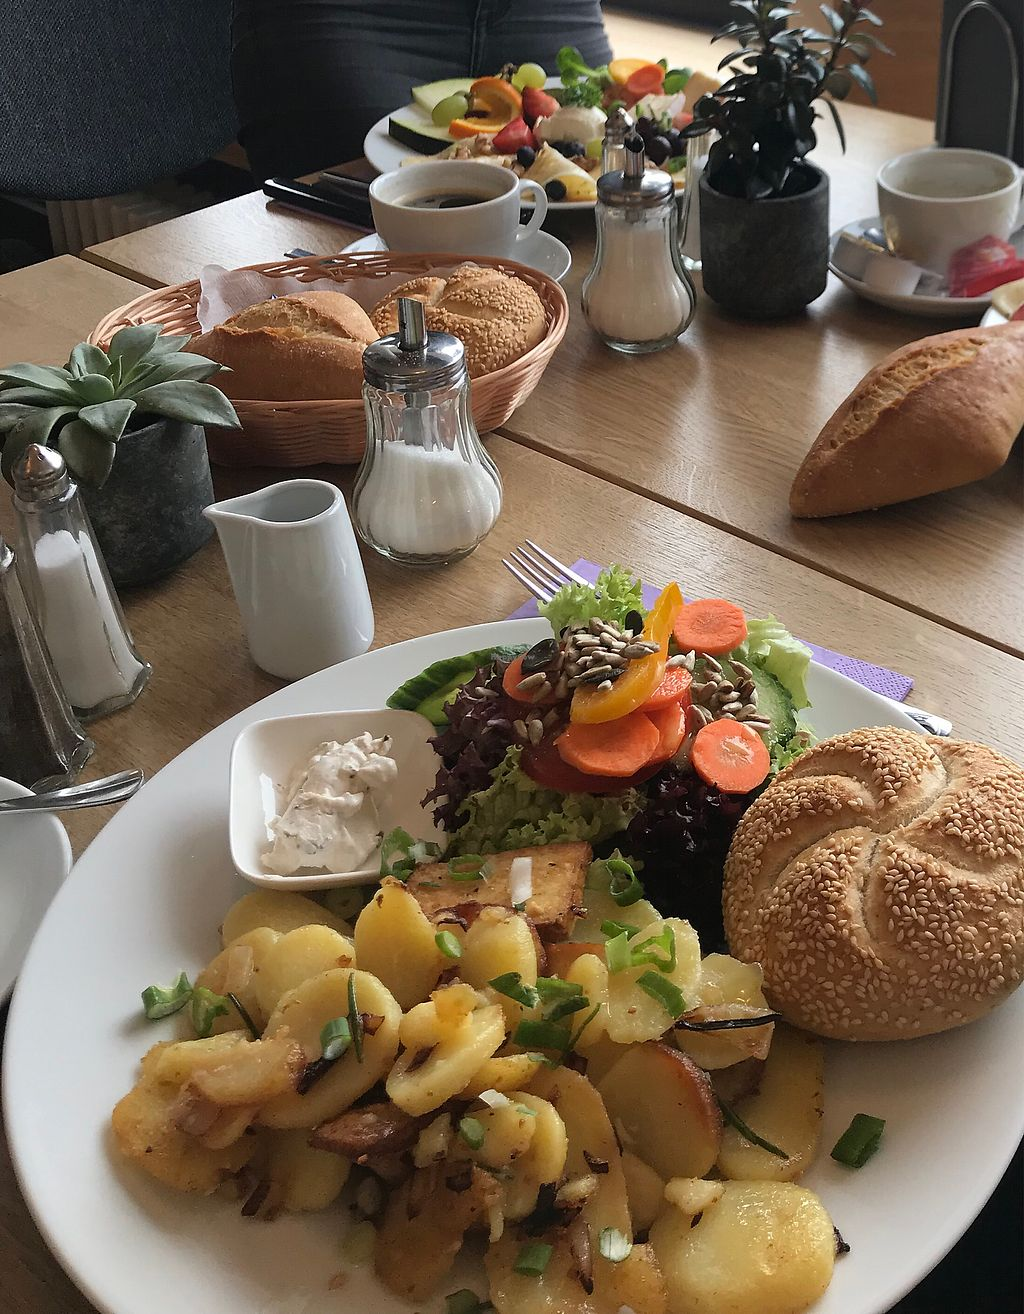 "Photo of Cafe Kongress  by <a href=""/members/profile/ChiaraEndrulat"">ChiaraEndrulat</a> <br/>Breakfast ""Herzhafter Veganer"" <br/> March 18, 2018  - <a href='/contact/abuse/image/114808/372340'>Report</a>"